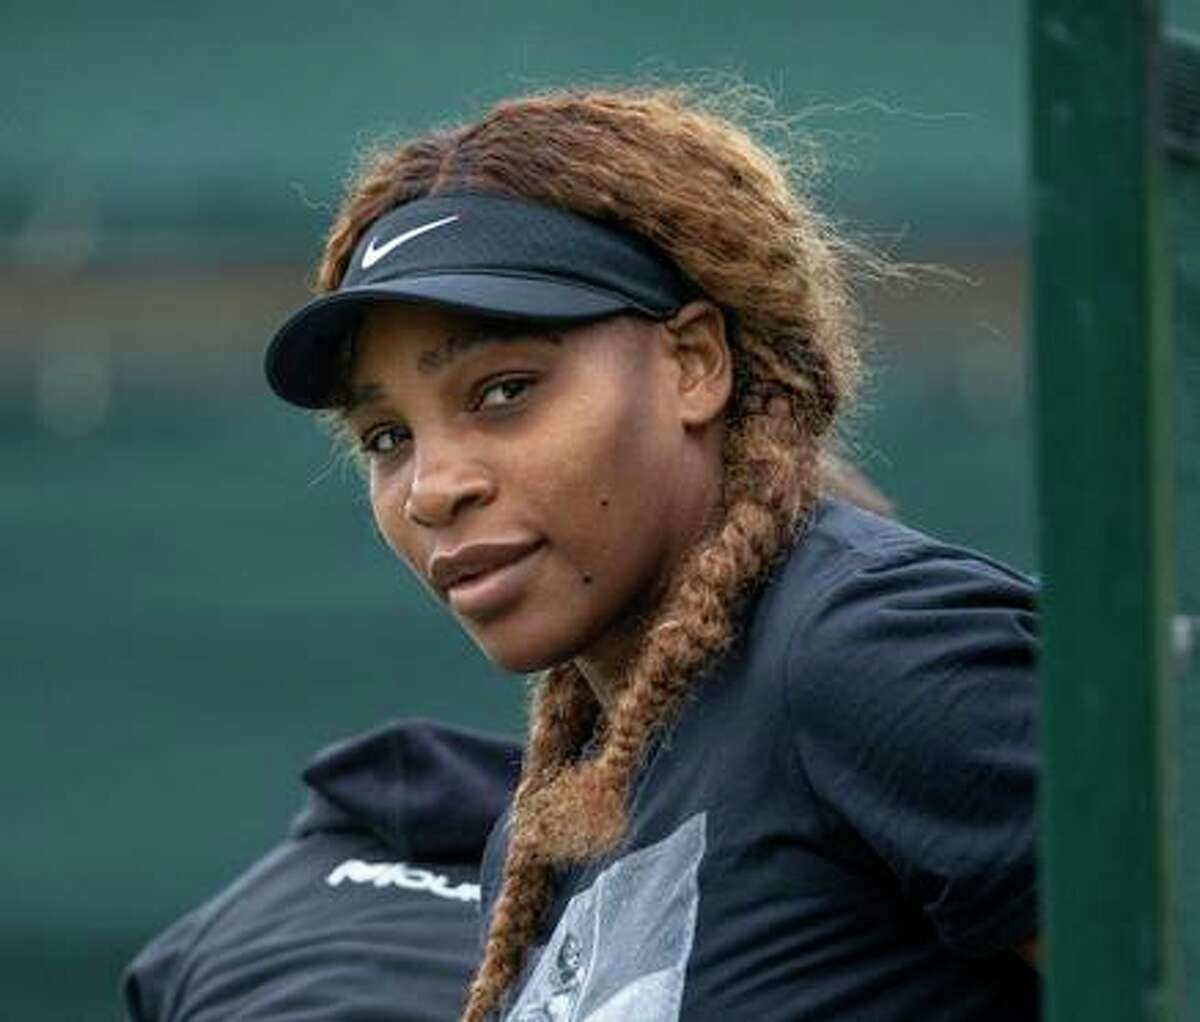 Serena Williams, a four-time gold medalist, said Sunday she will not be going to next month's Olympics in Tokyo.